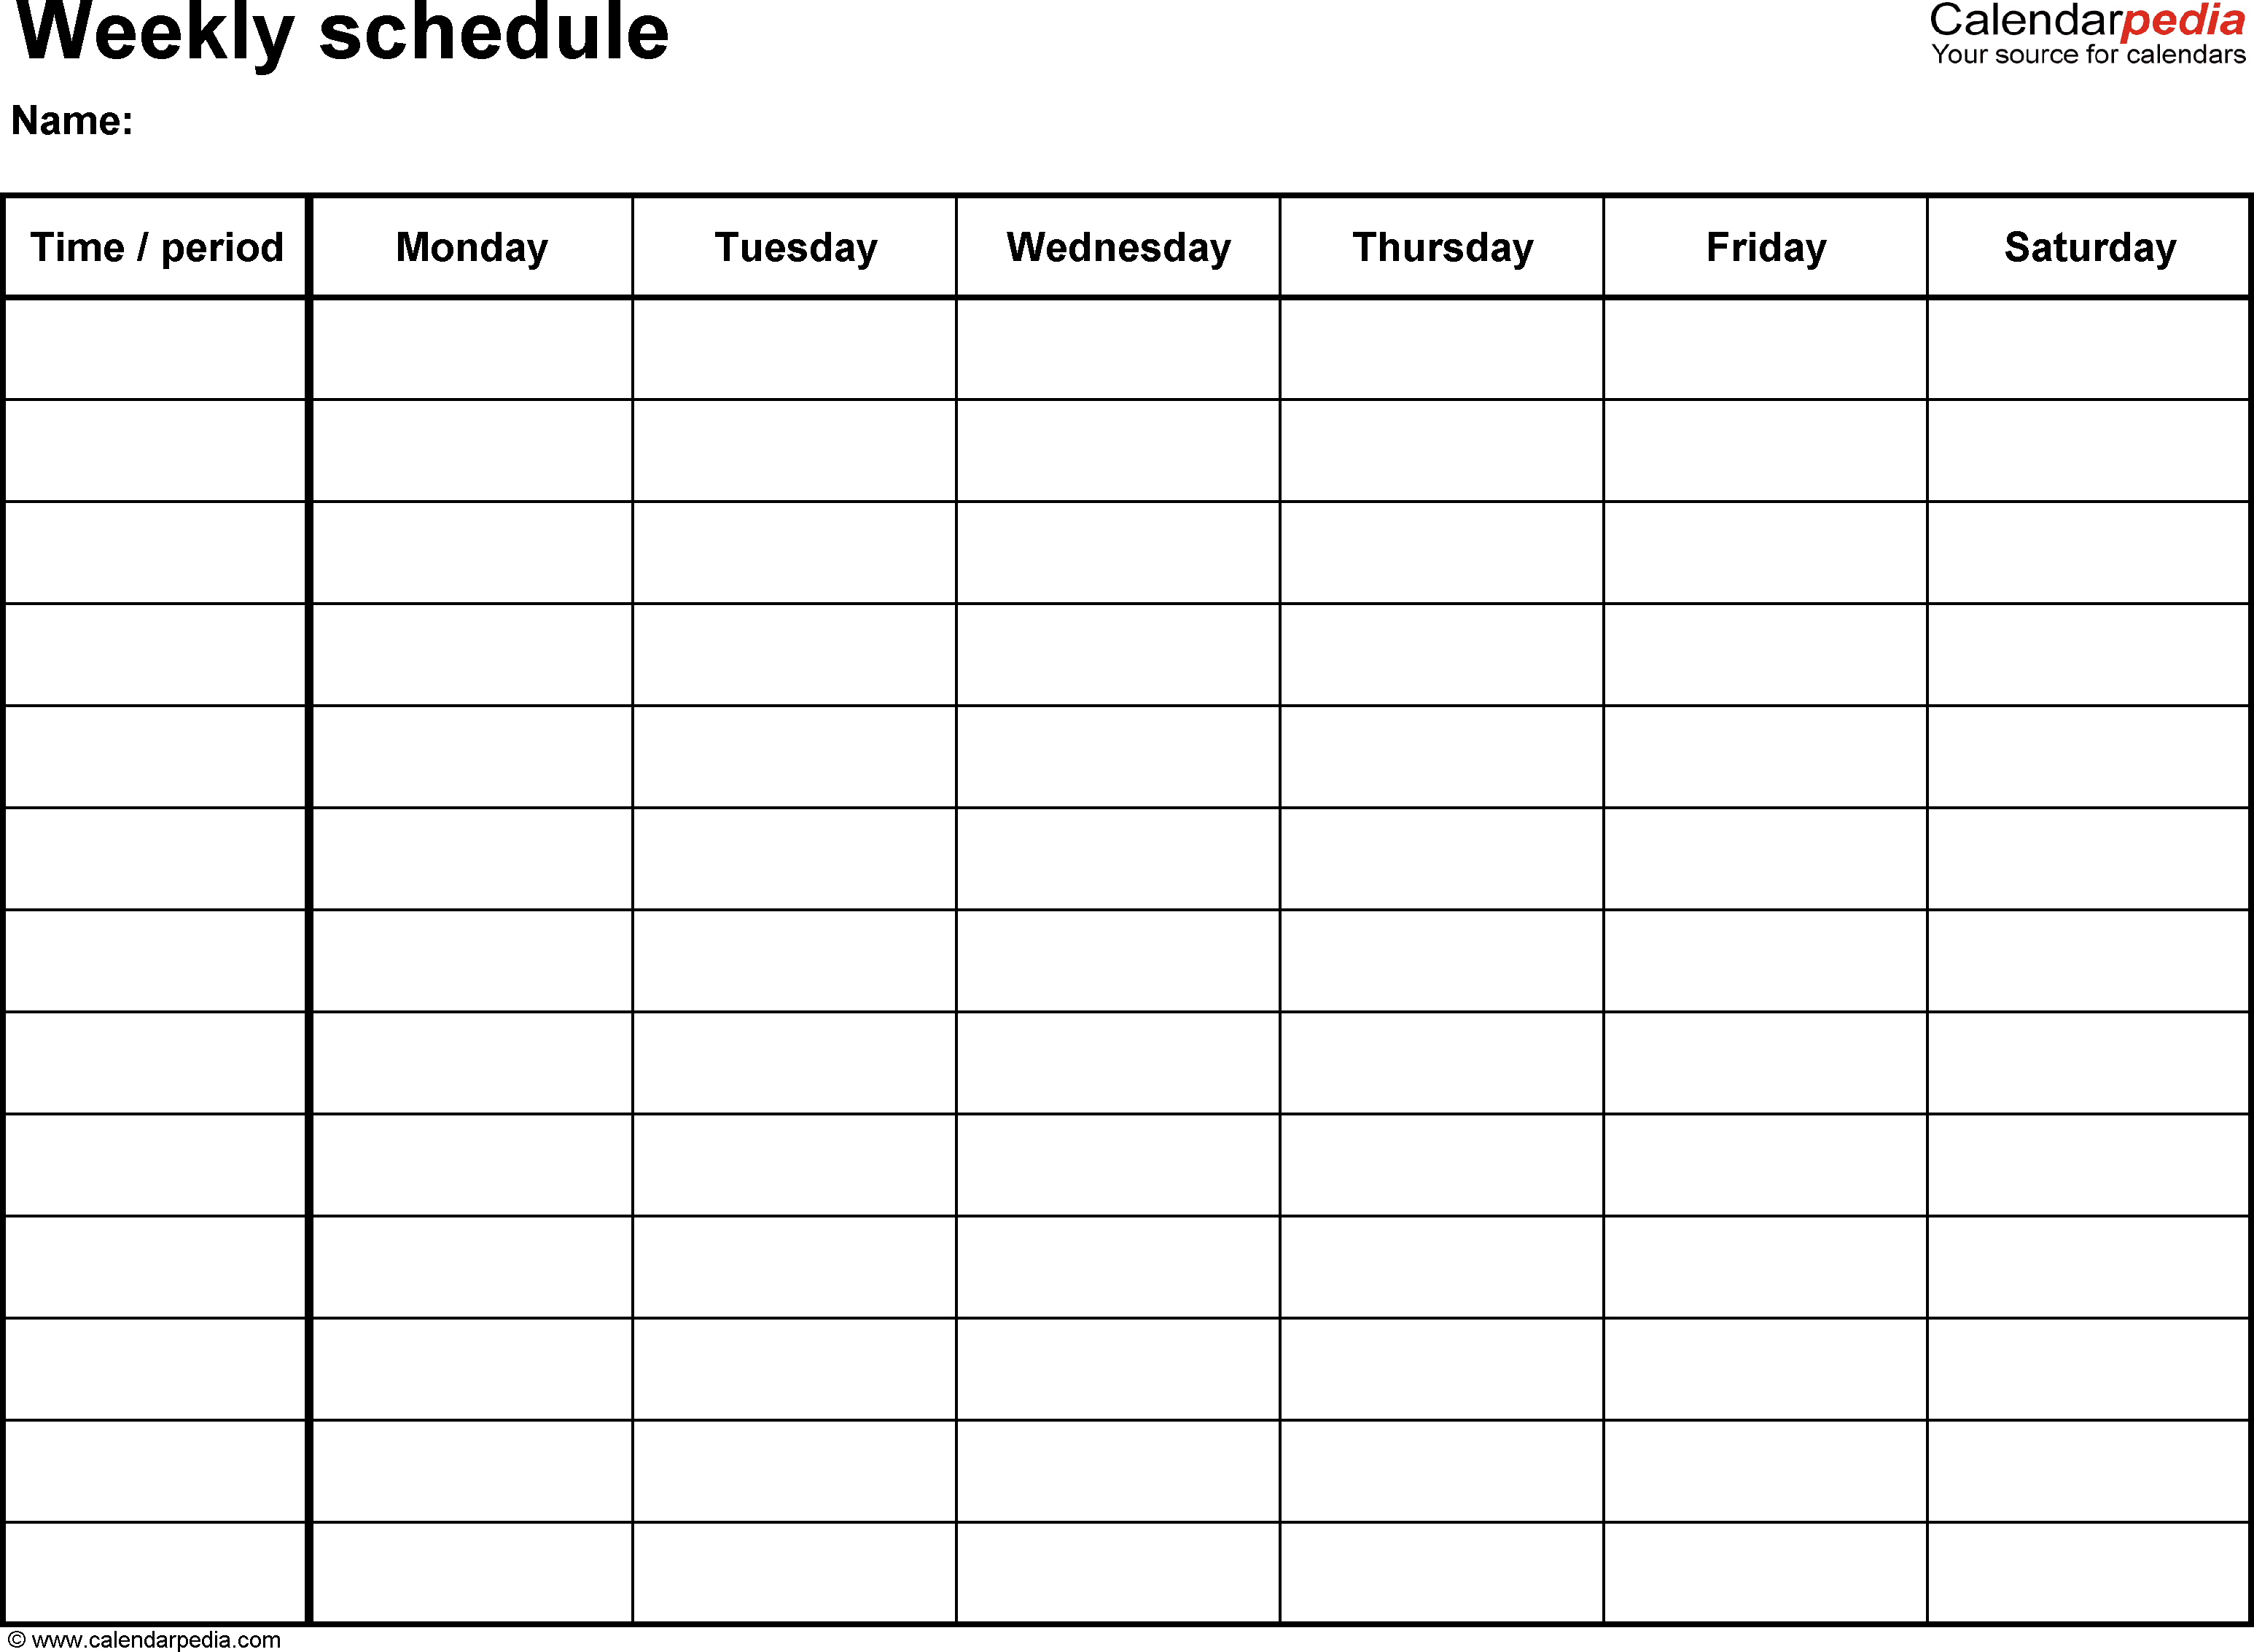 Free Weekly Schedule Templates For Excel - 18 Templates within Cute Blank Calendar Page Template